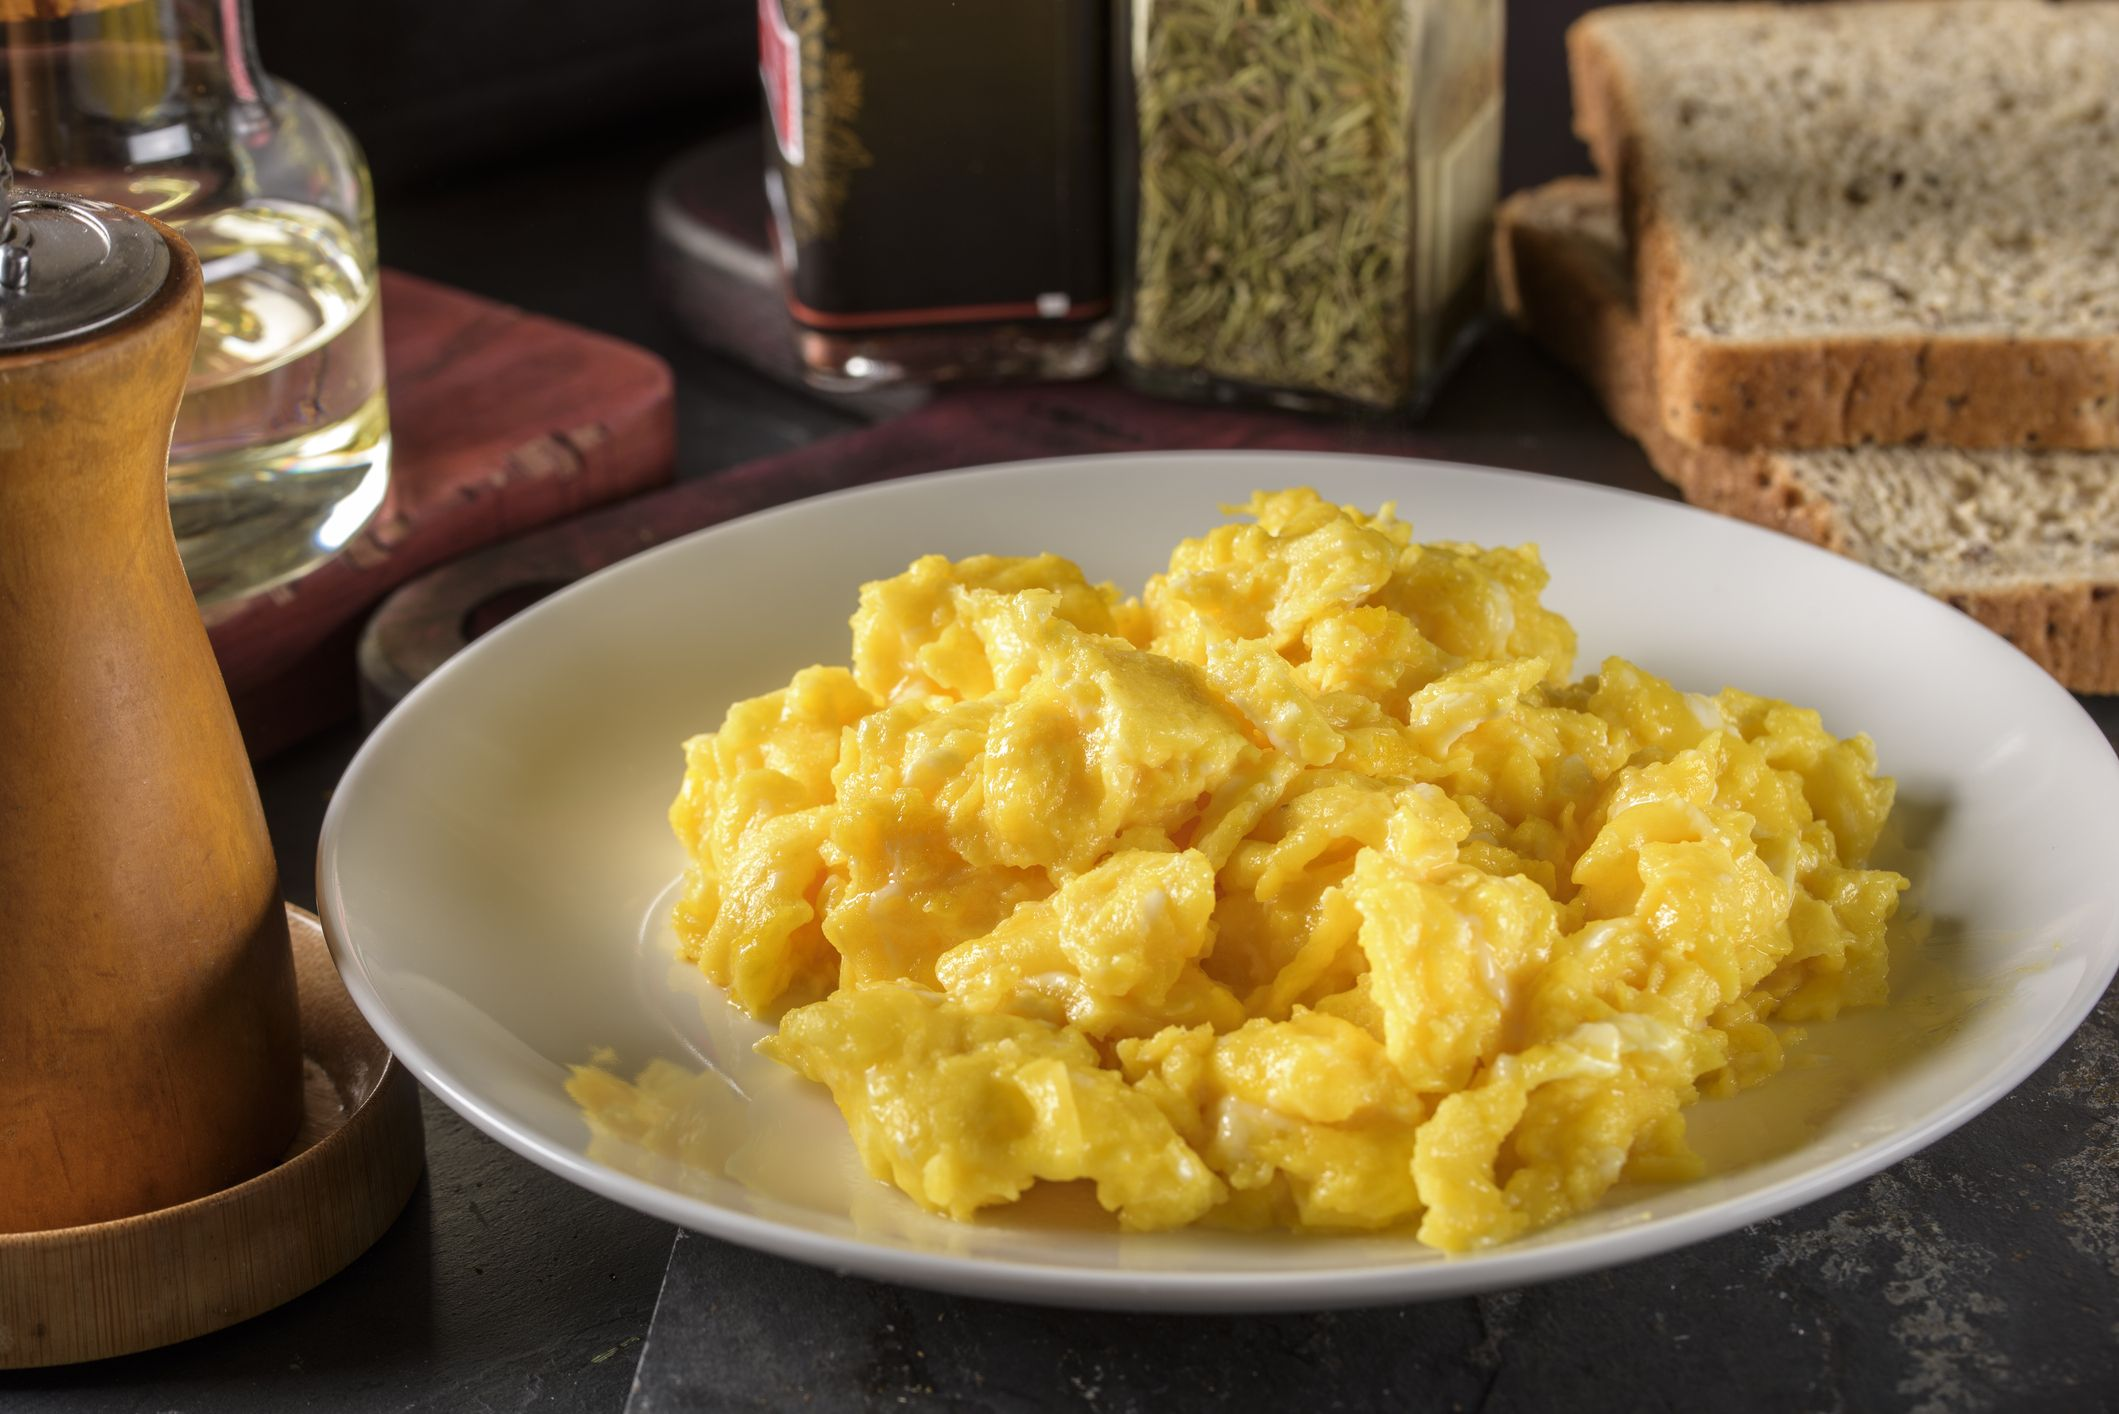 There's Only One Right Way to Cook Scrambled Eggs